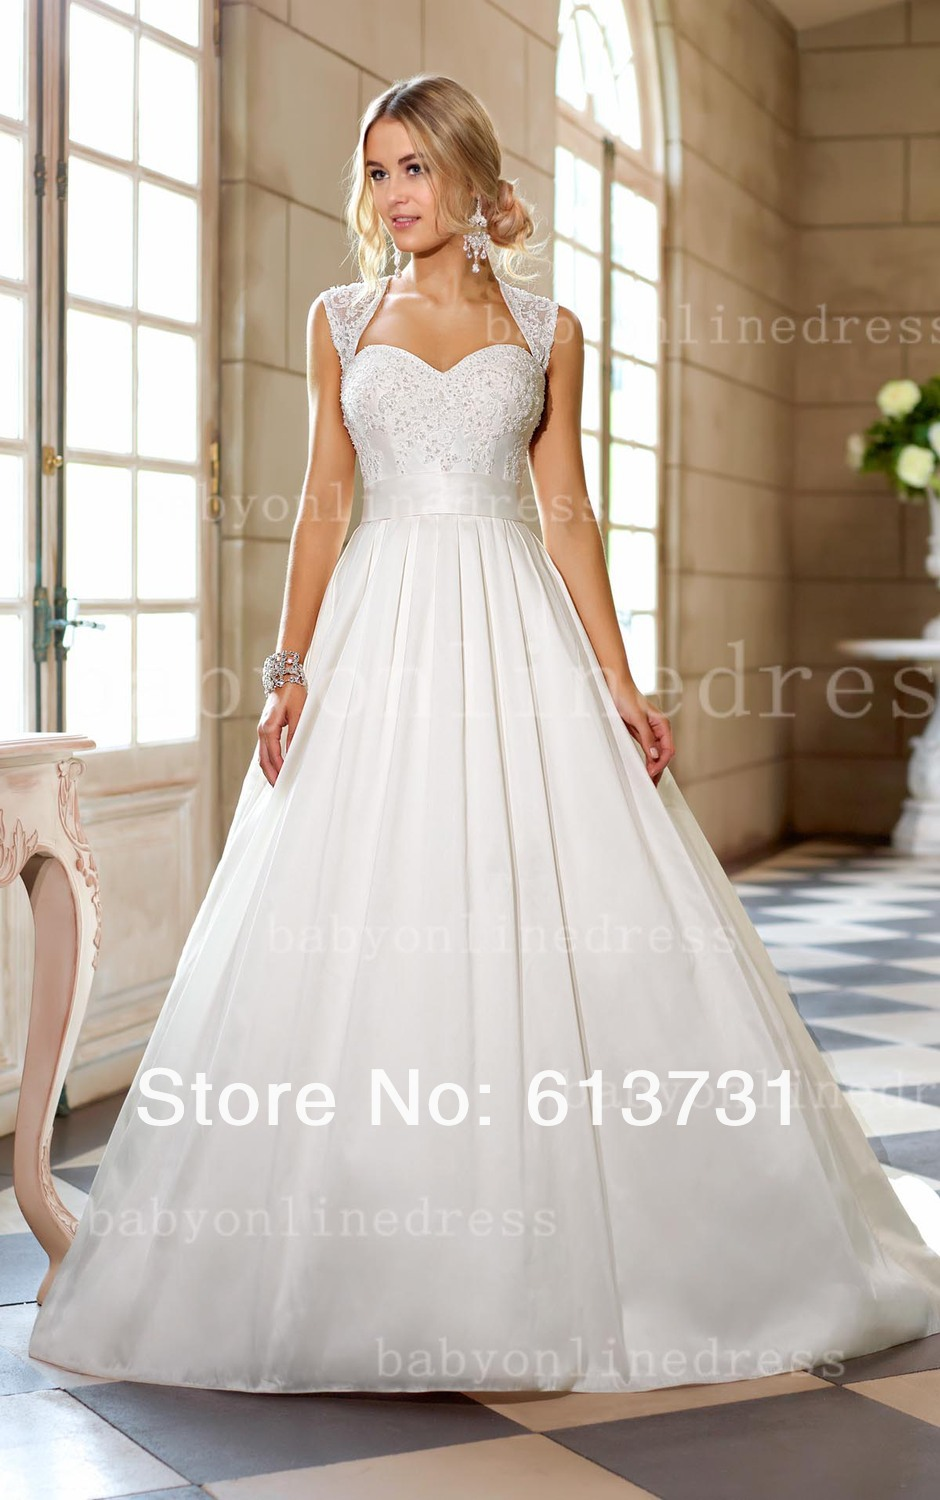 French Style Bridesmaid Dresses   Dress images